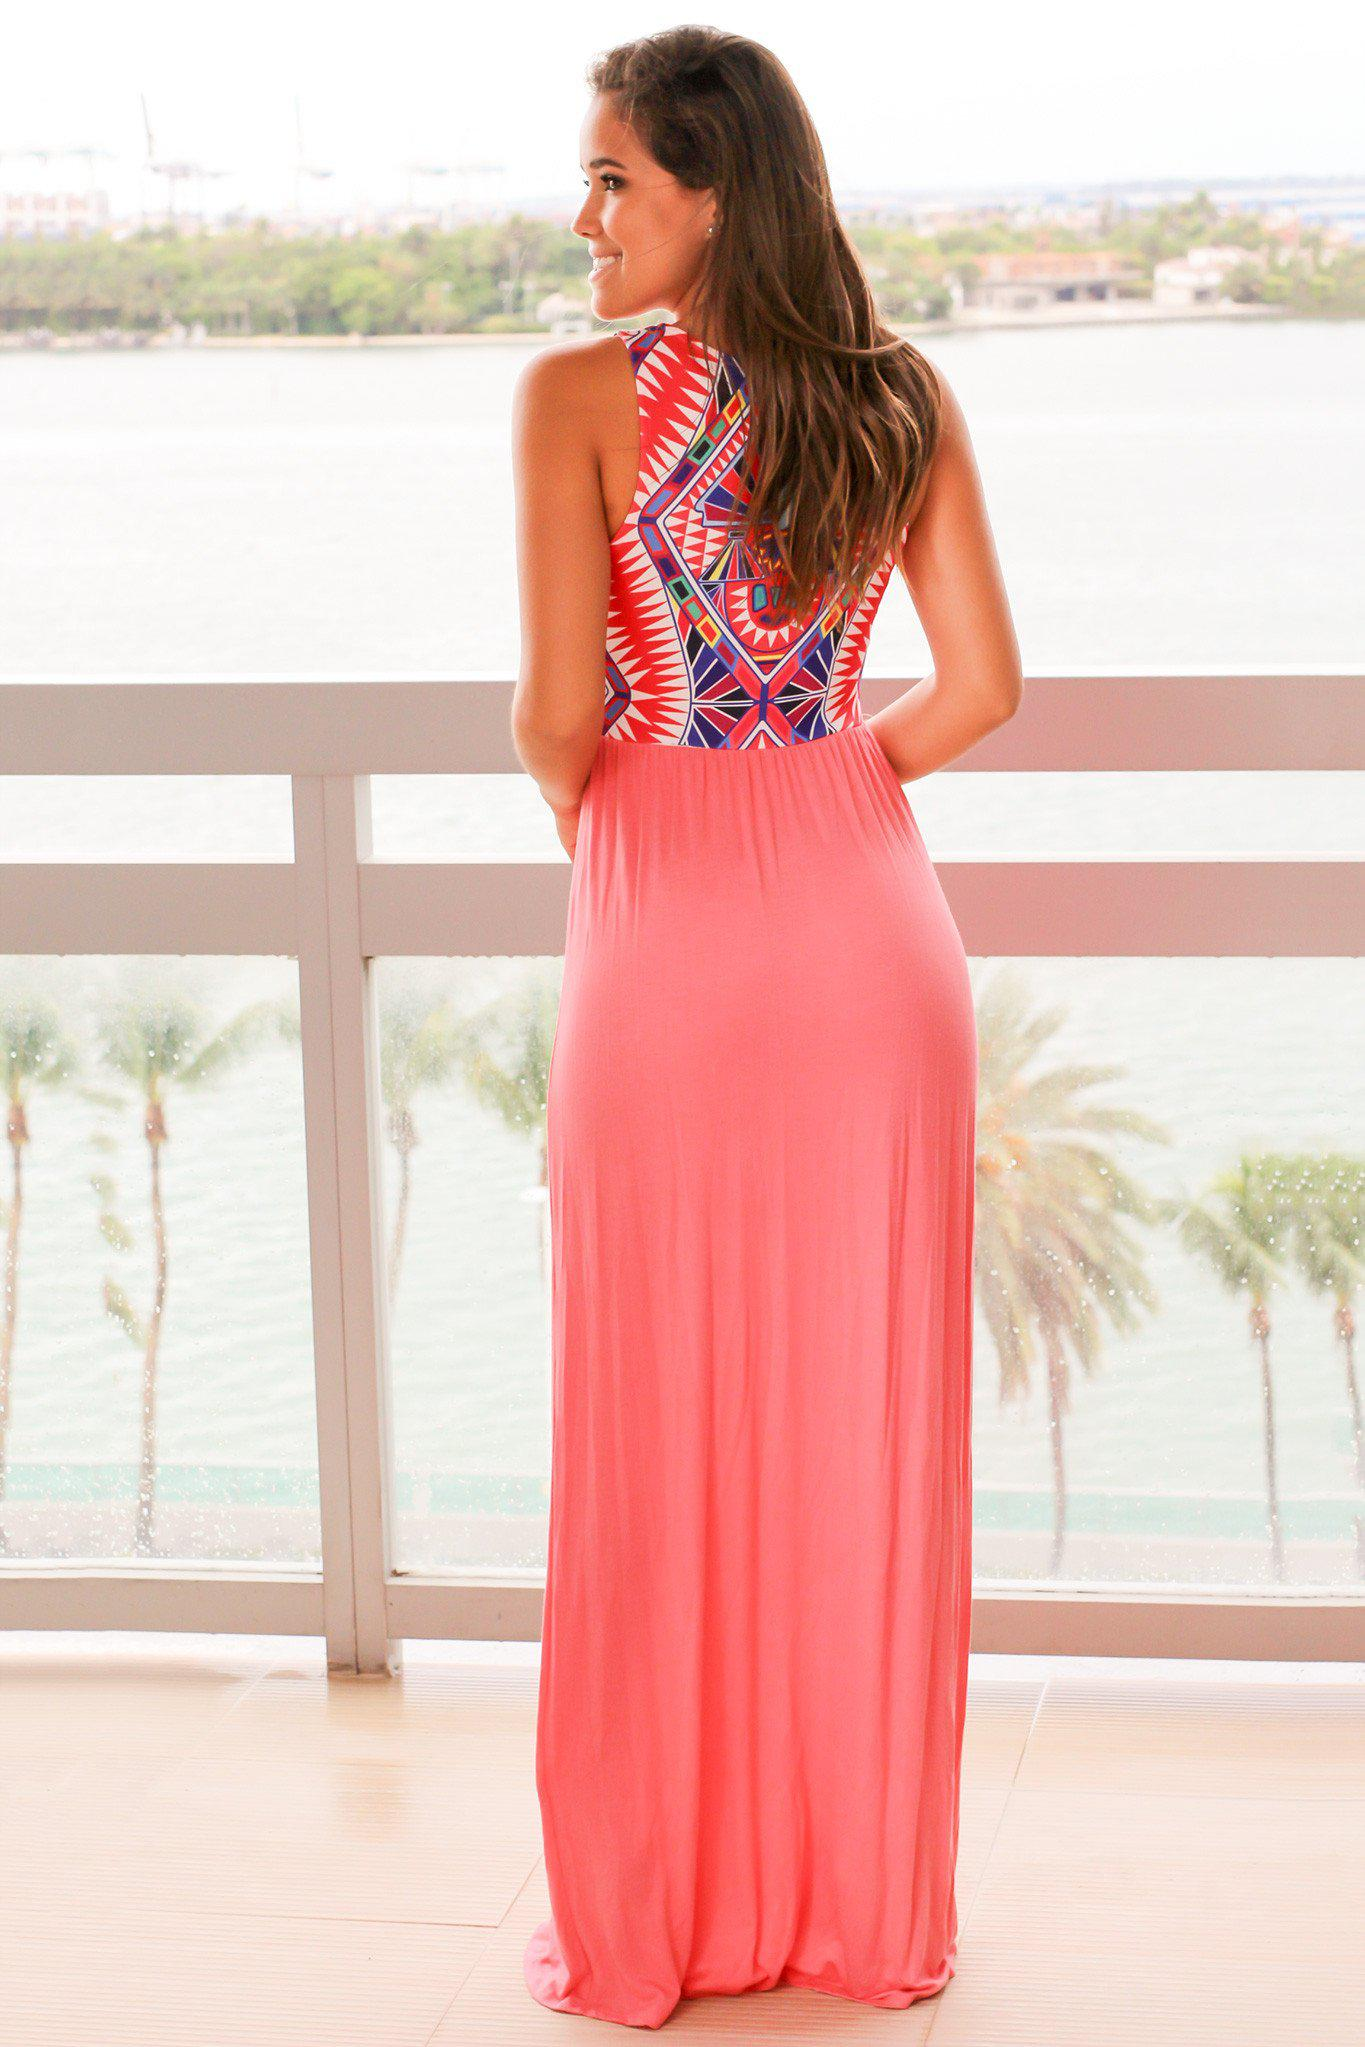 Coral Maxi Dress with Tribal Printed Top